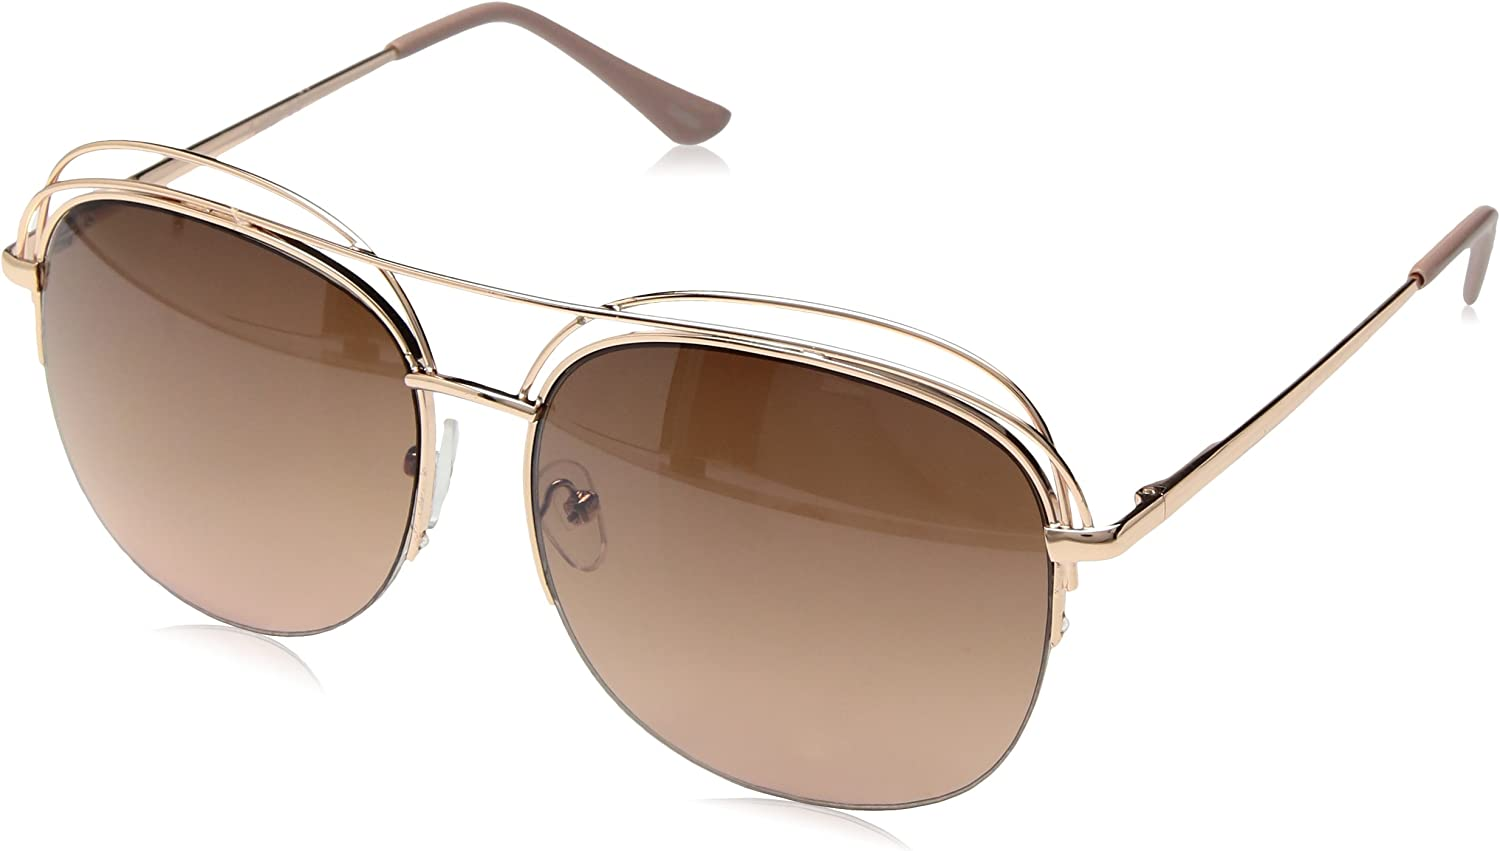 Nanette by Nanette Lepore Women's Nn223 Rgdrs Round Sunglasses gold pink, 60 mm